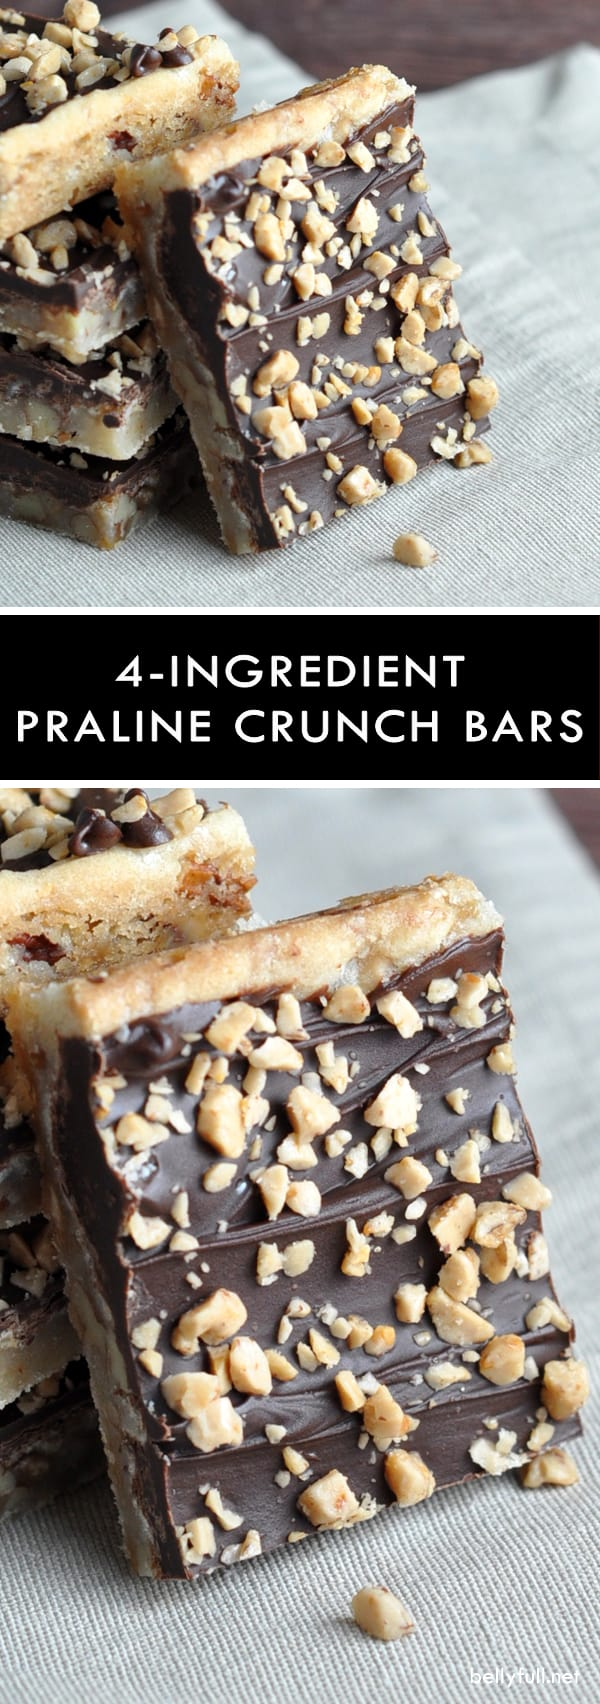 Praline Crunch Bars - only 4 ingredients in this easy and fantastic treat!